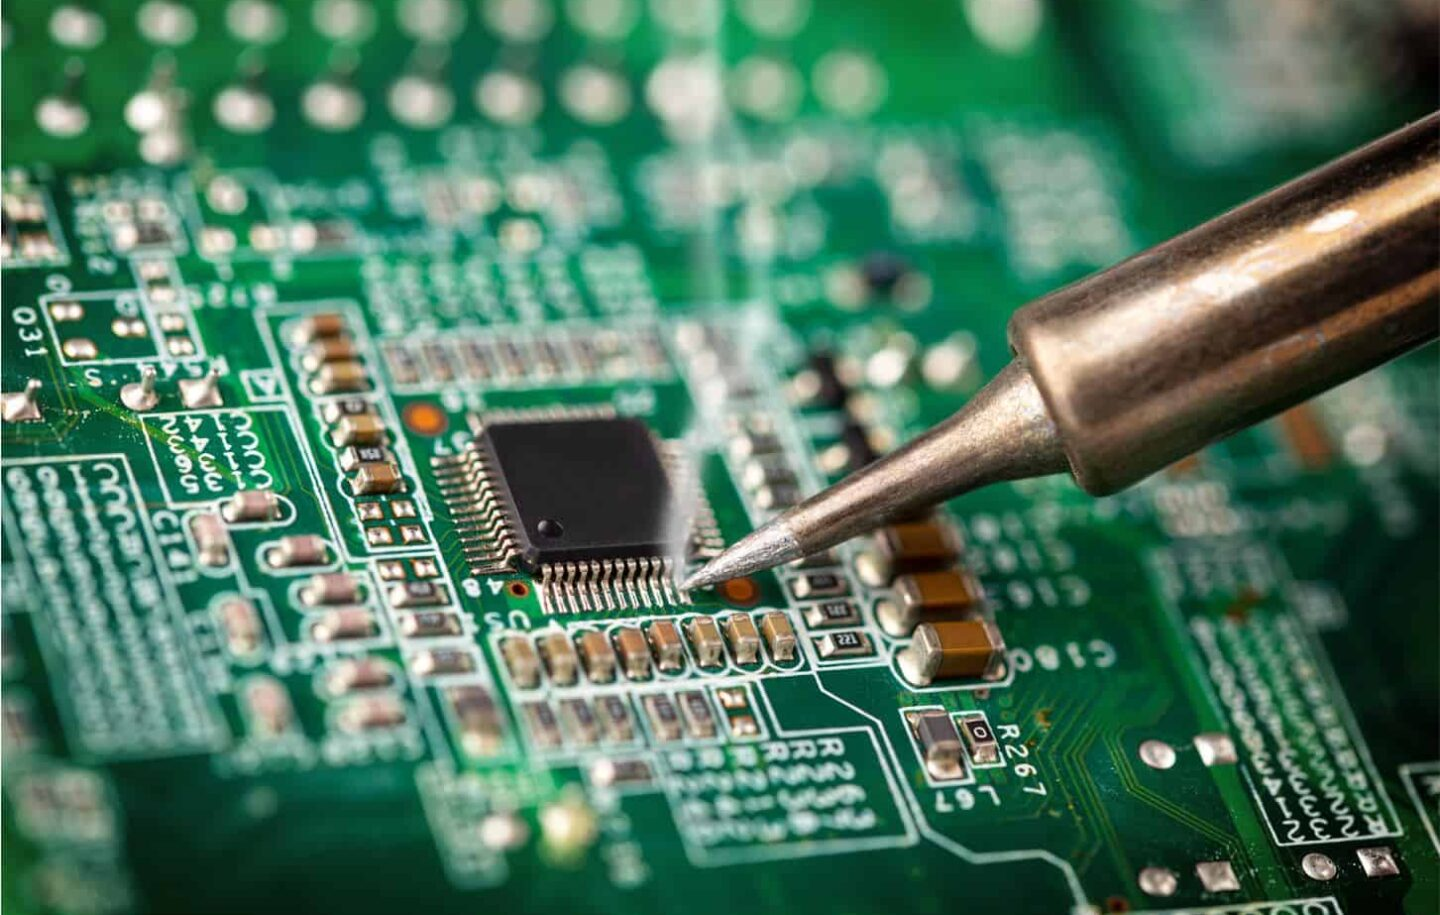 Effective soldering relies on PCB cleaning both before and after soldering